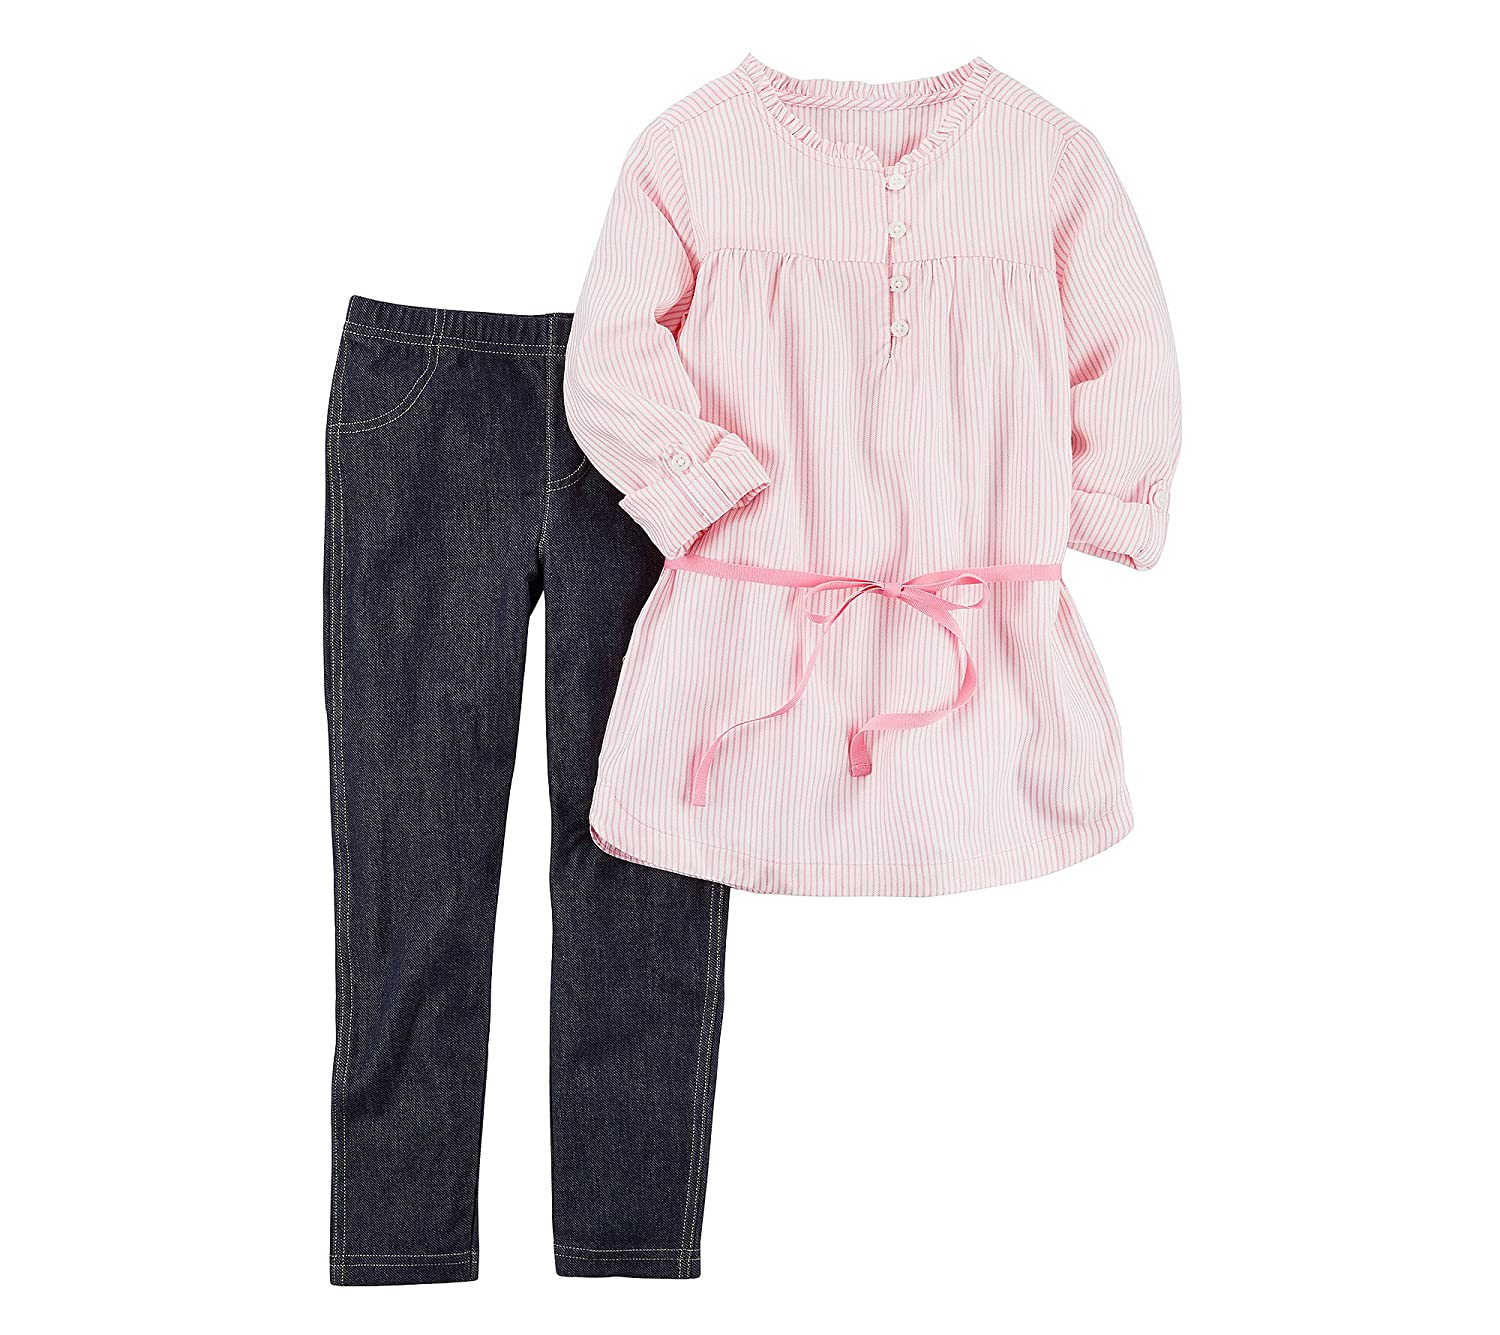 Carters Girls 4-8 Long Sleeve Tunic and Denim Jeggings Set